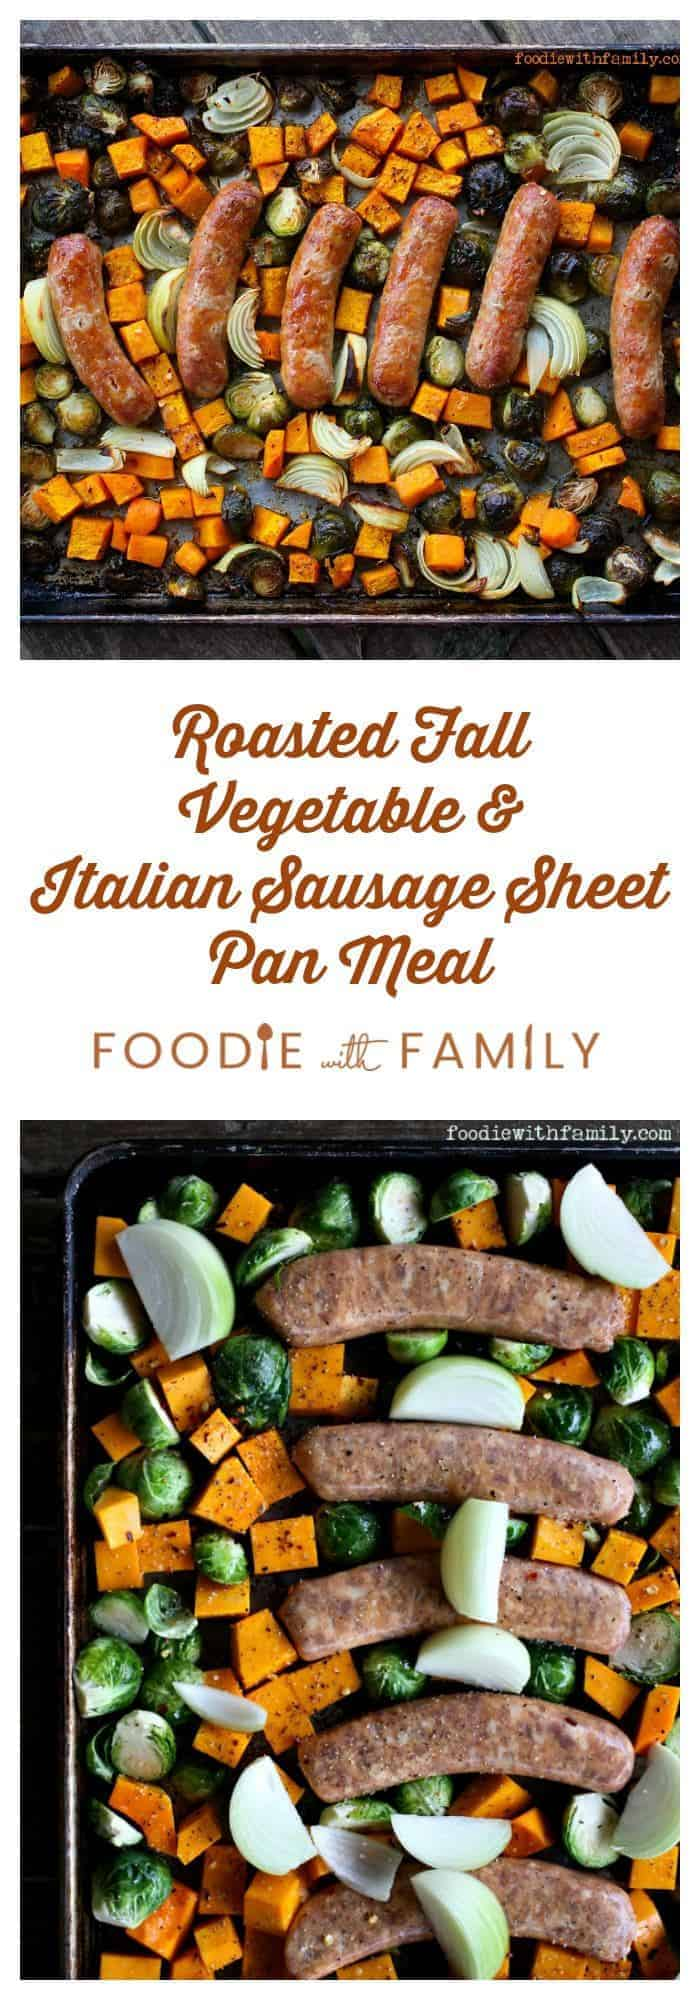 Roasted Fall Vegetables & Italian Sausage Sheet Pan Meal from foodiewithfamily.com